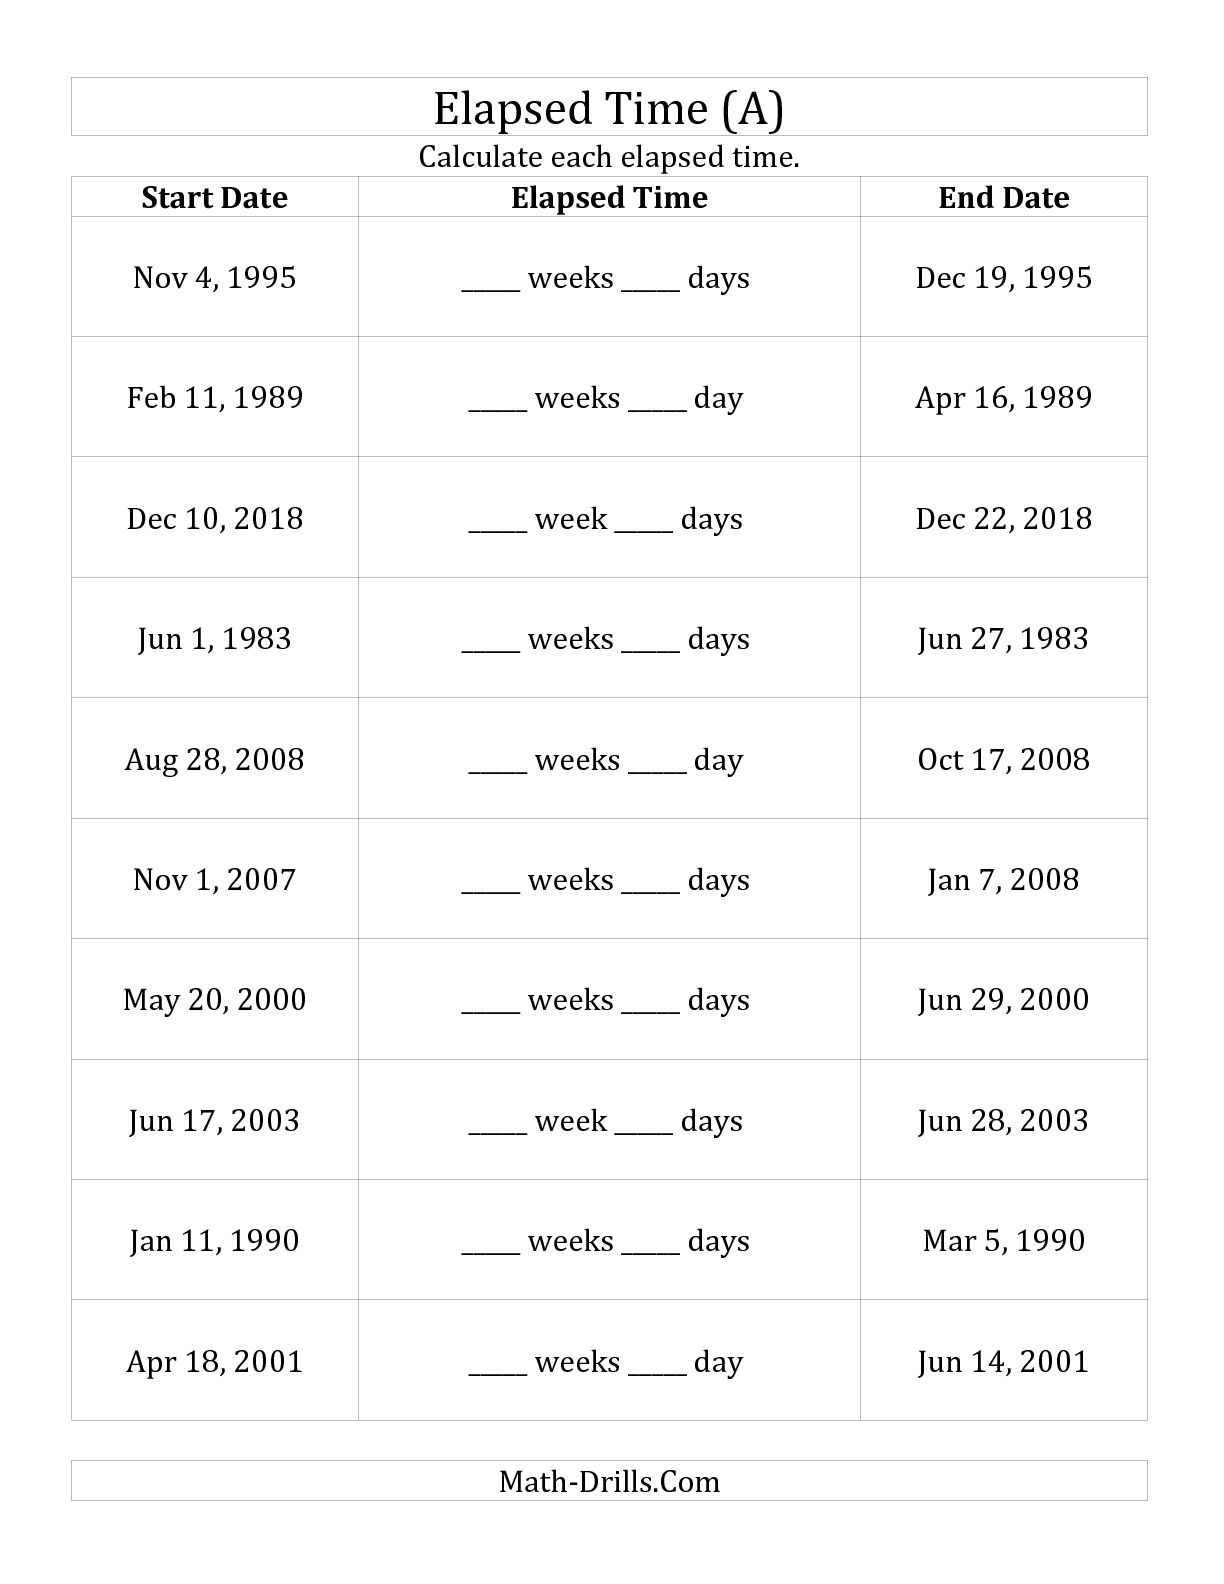 17 Best Images Of Calculate Elapsed Time Worksheets